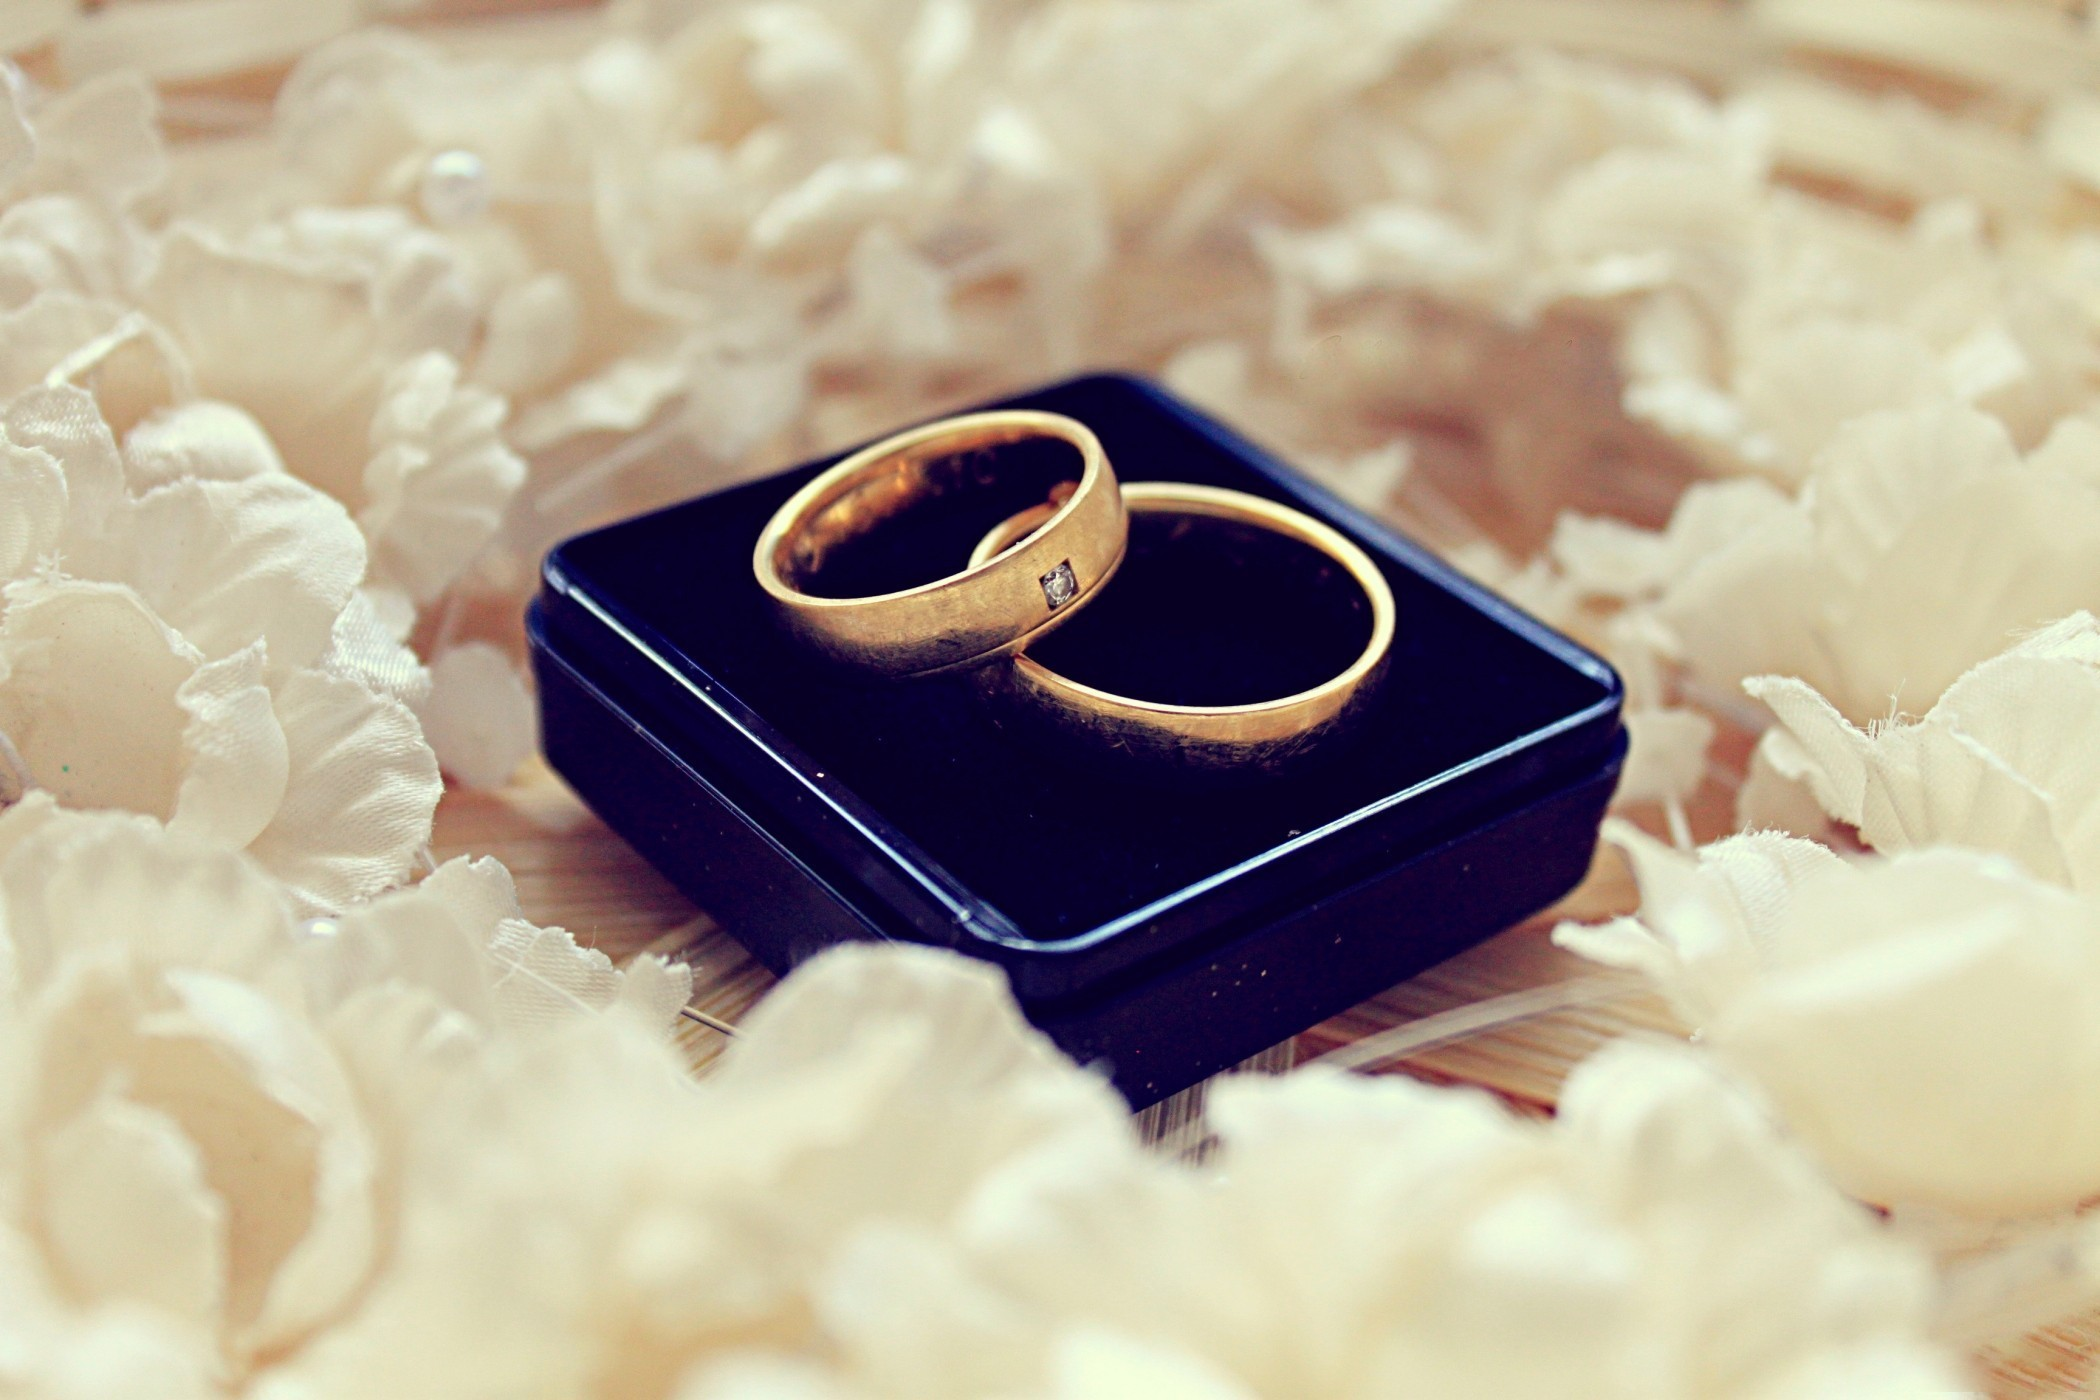 Ring Ceremony Hd Wallpaper Wedding Wallpapers Pictures Images